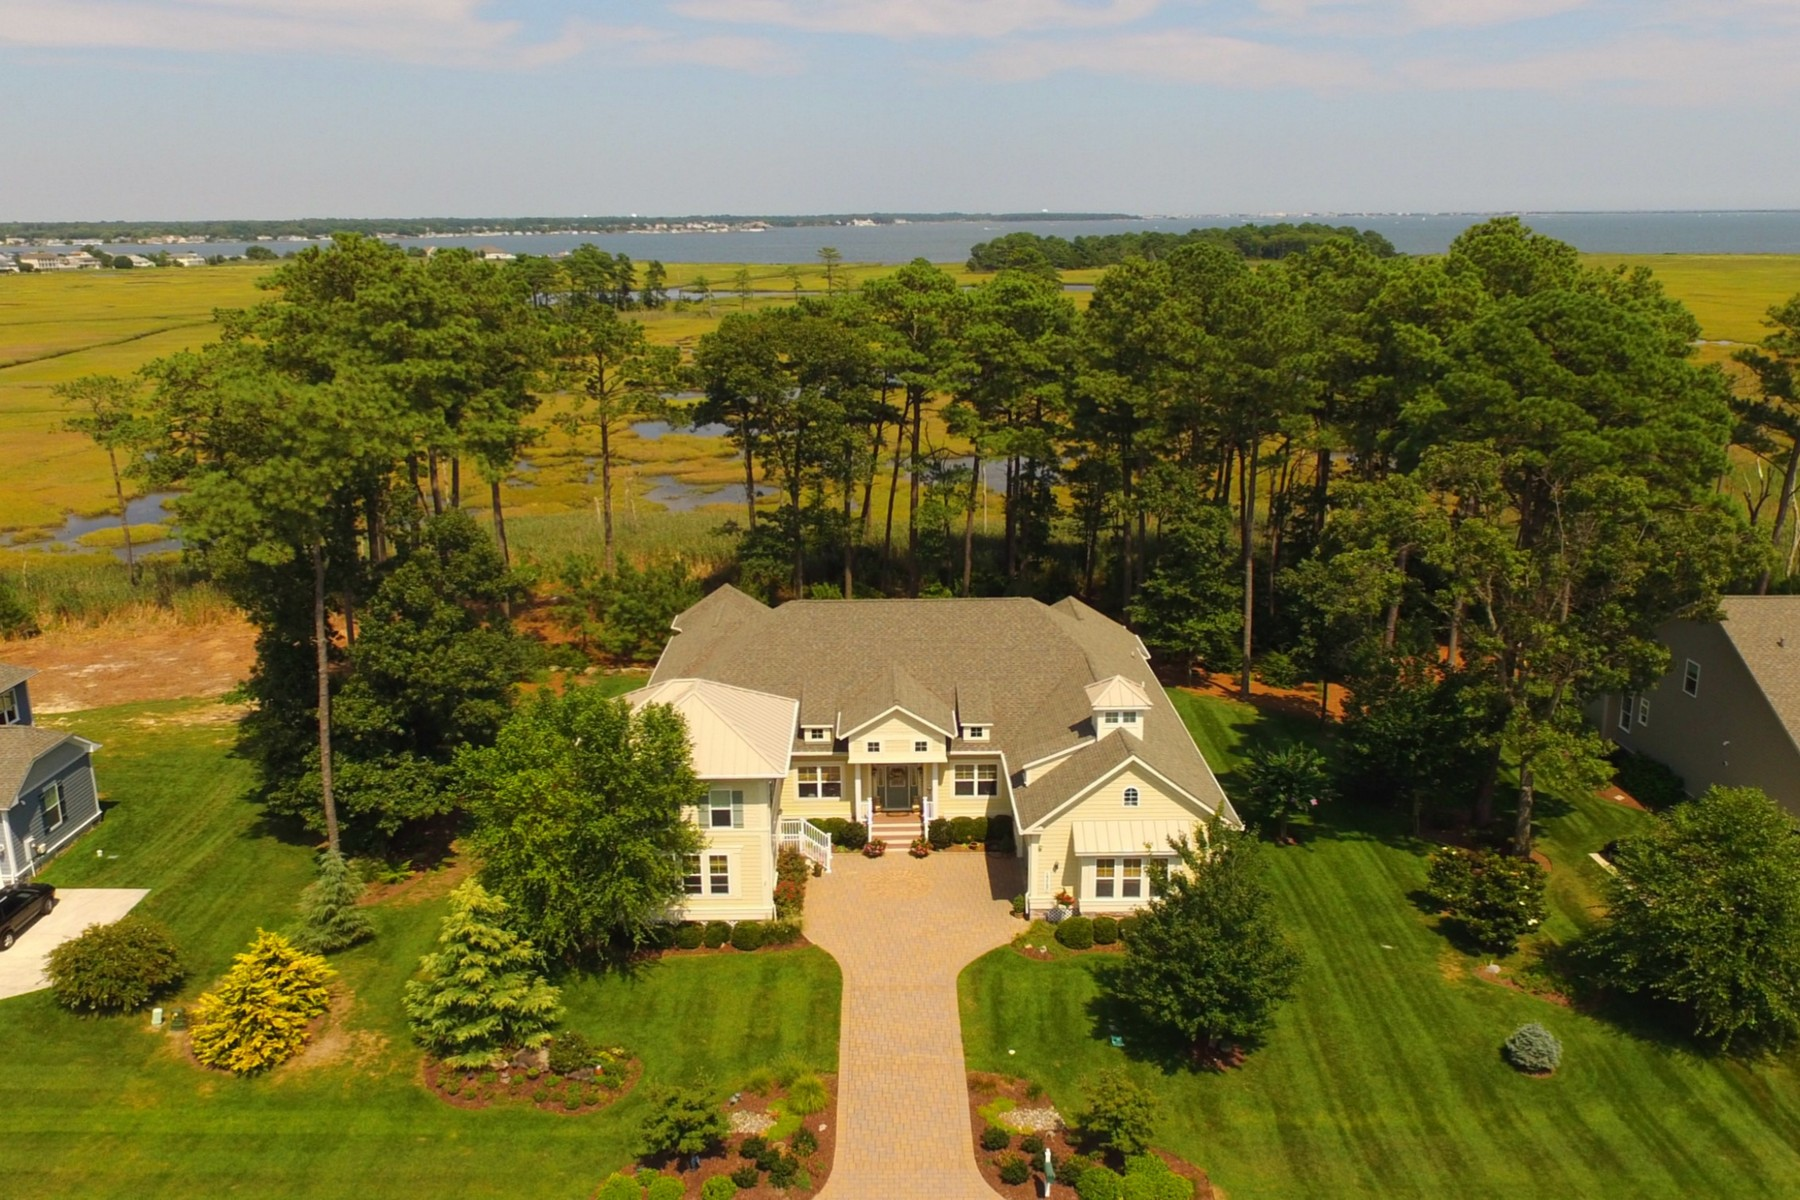 Property For Sale at 23290 Horse Island Road , Lewes, DE 19958